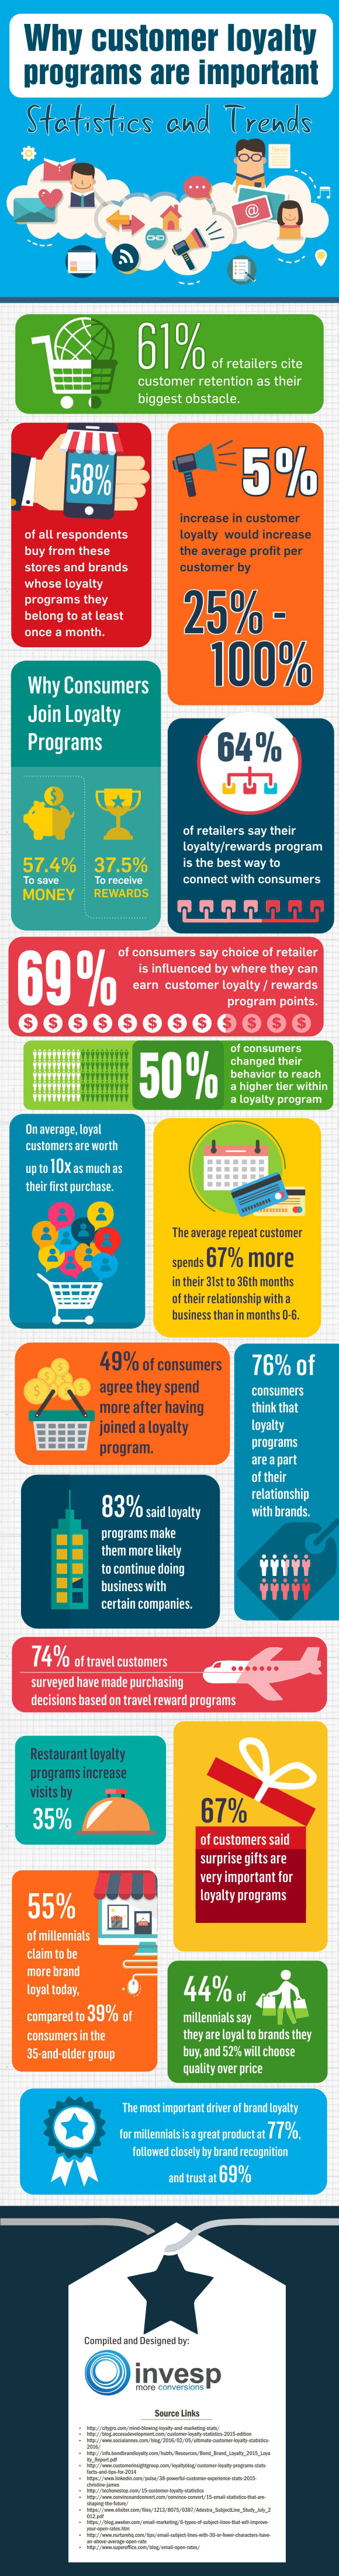 Why customer loyalty programs are important